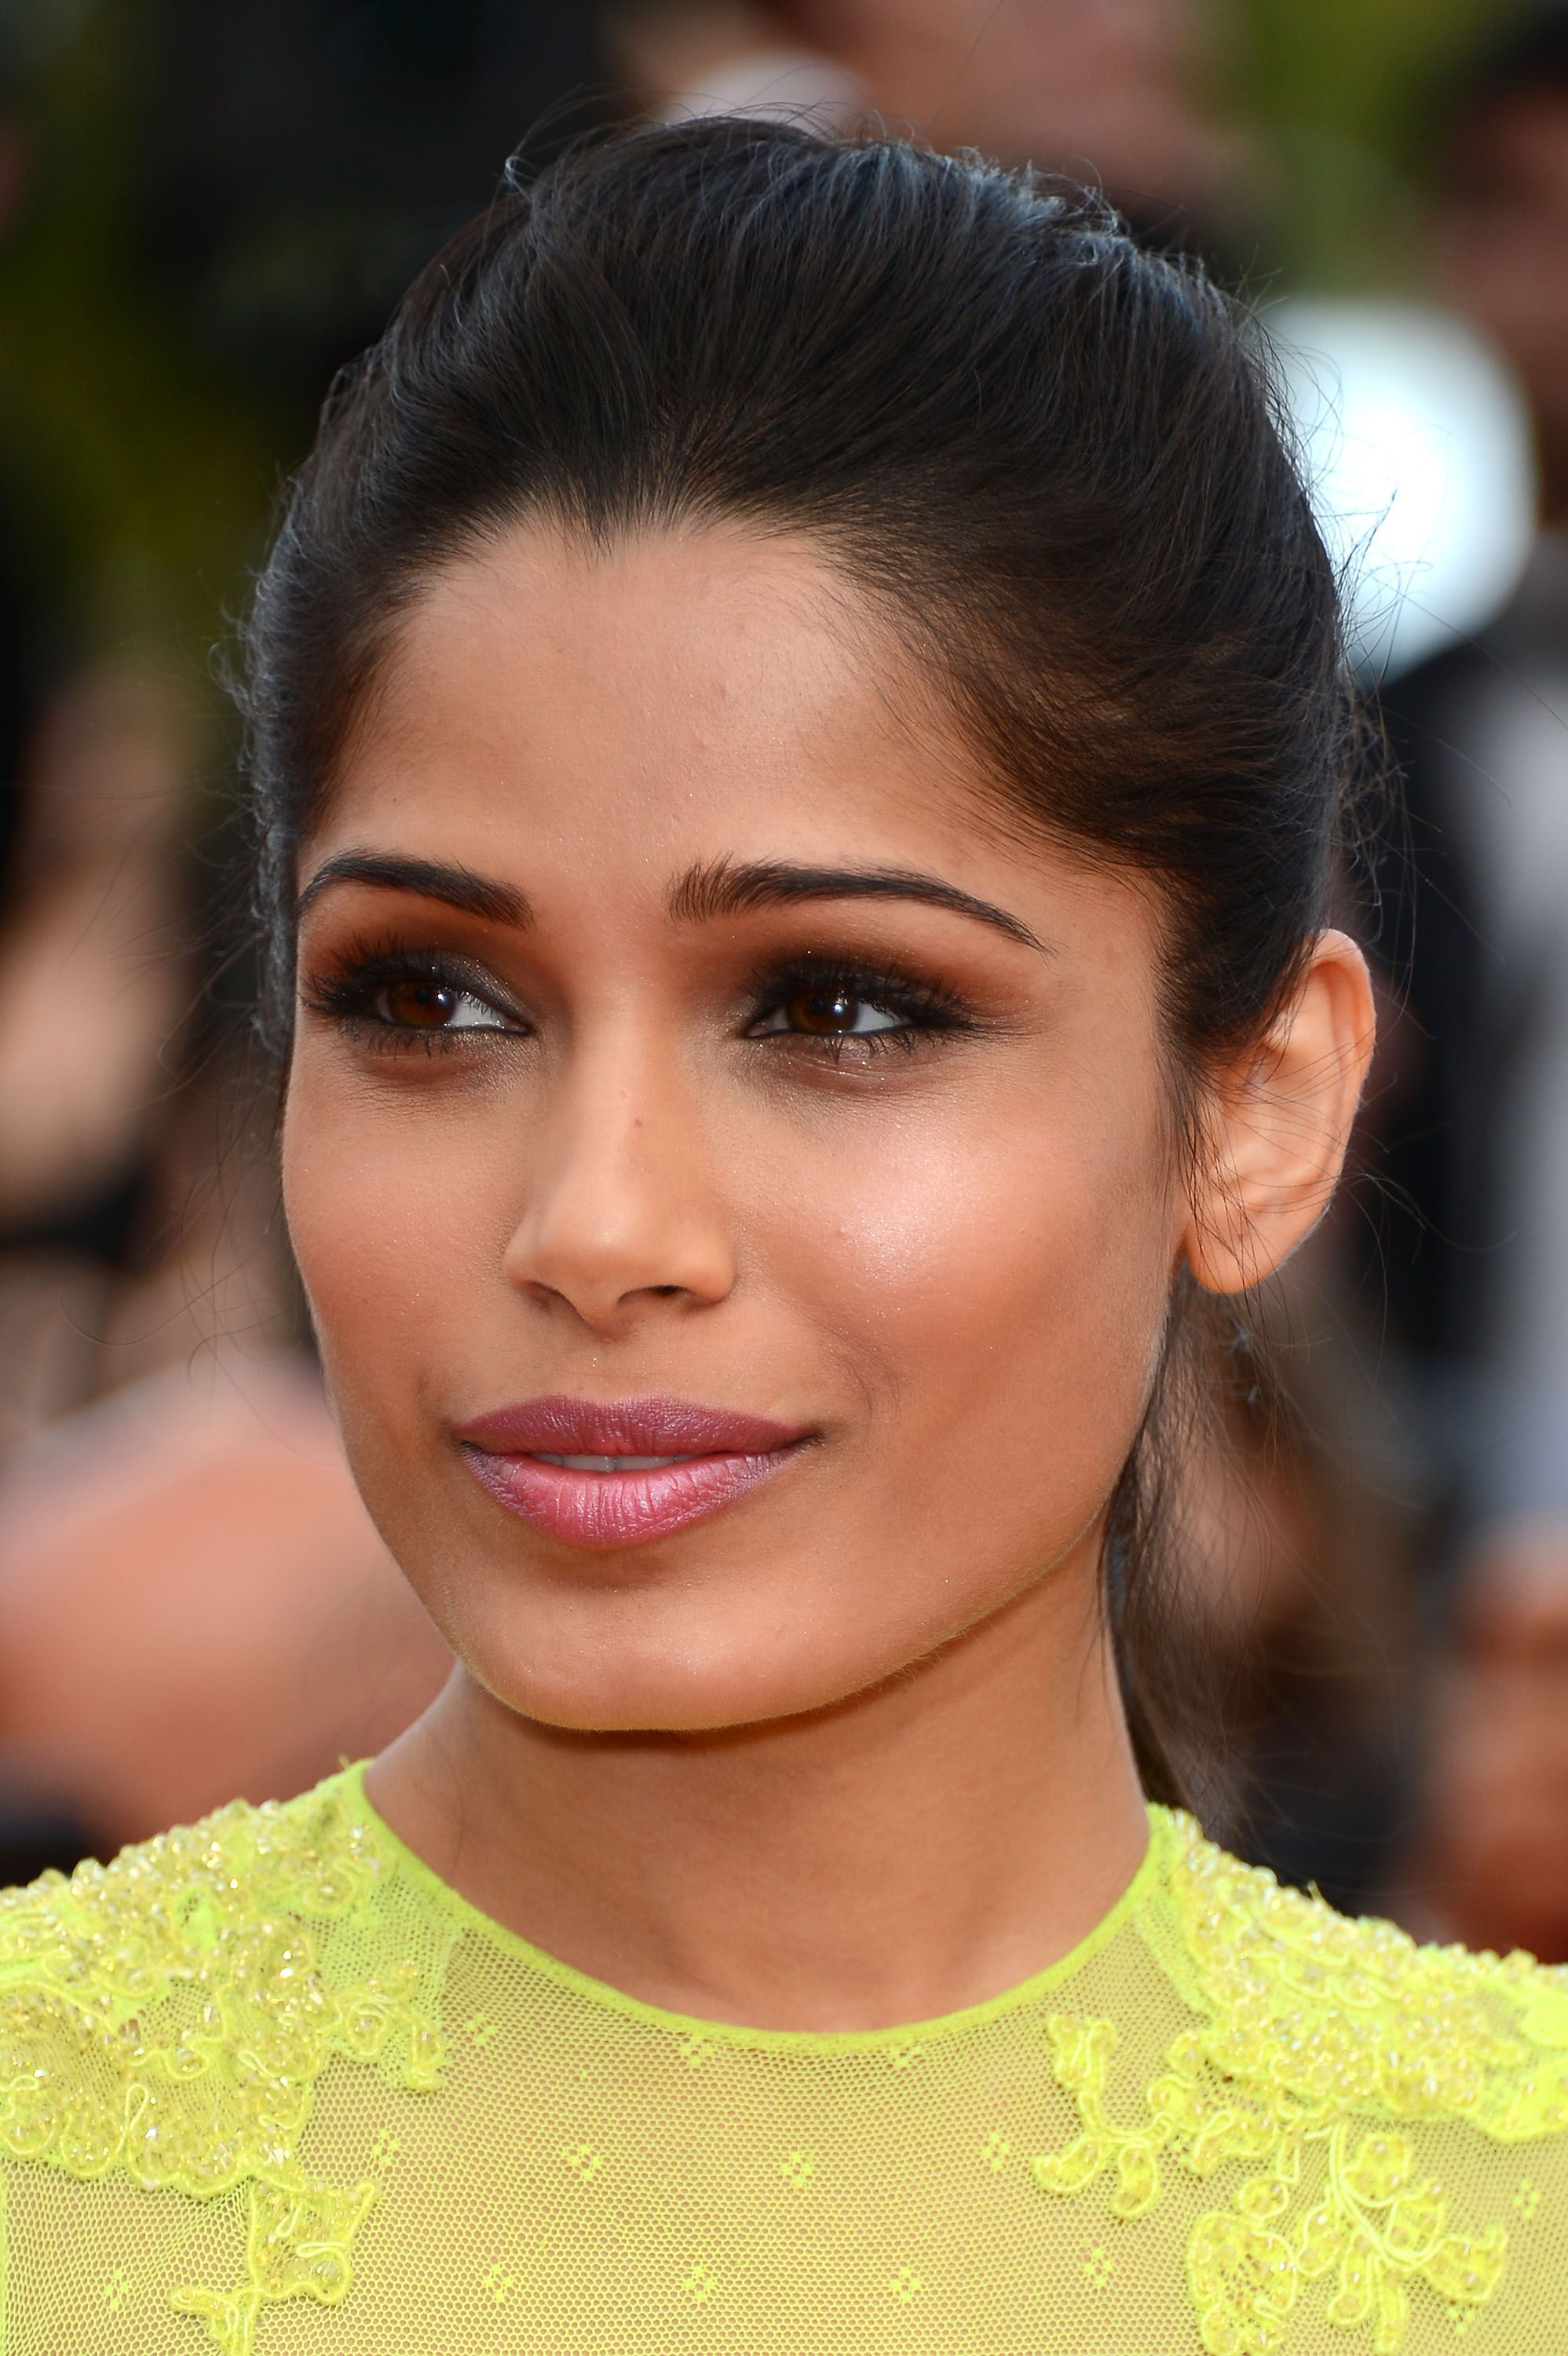 Pussy Hacked Freida Pinto naked photo 2017